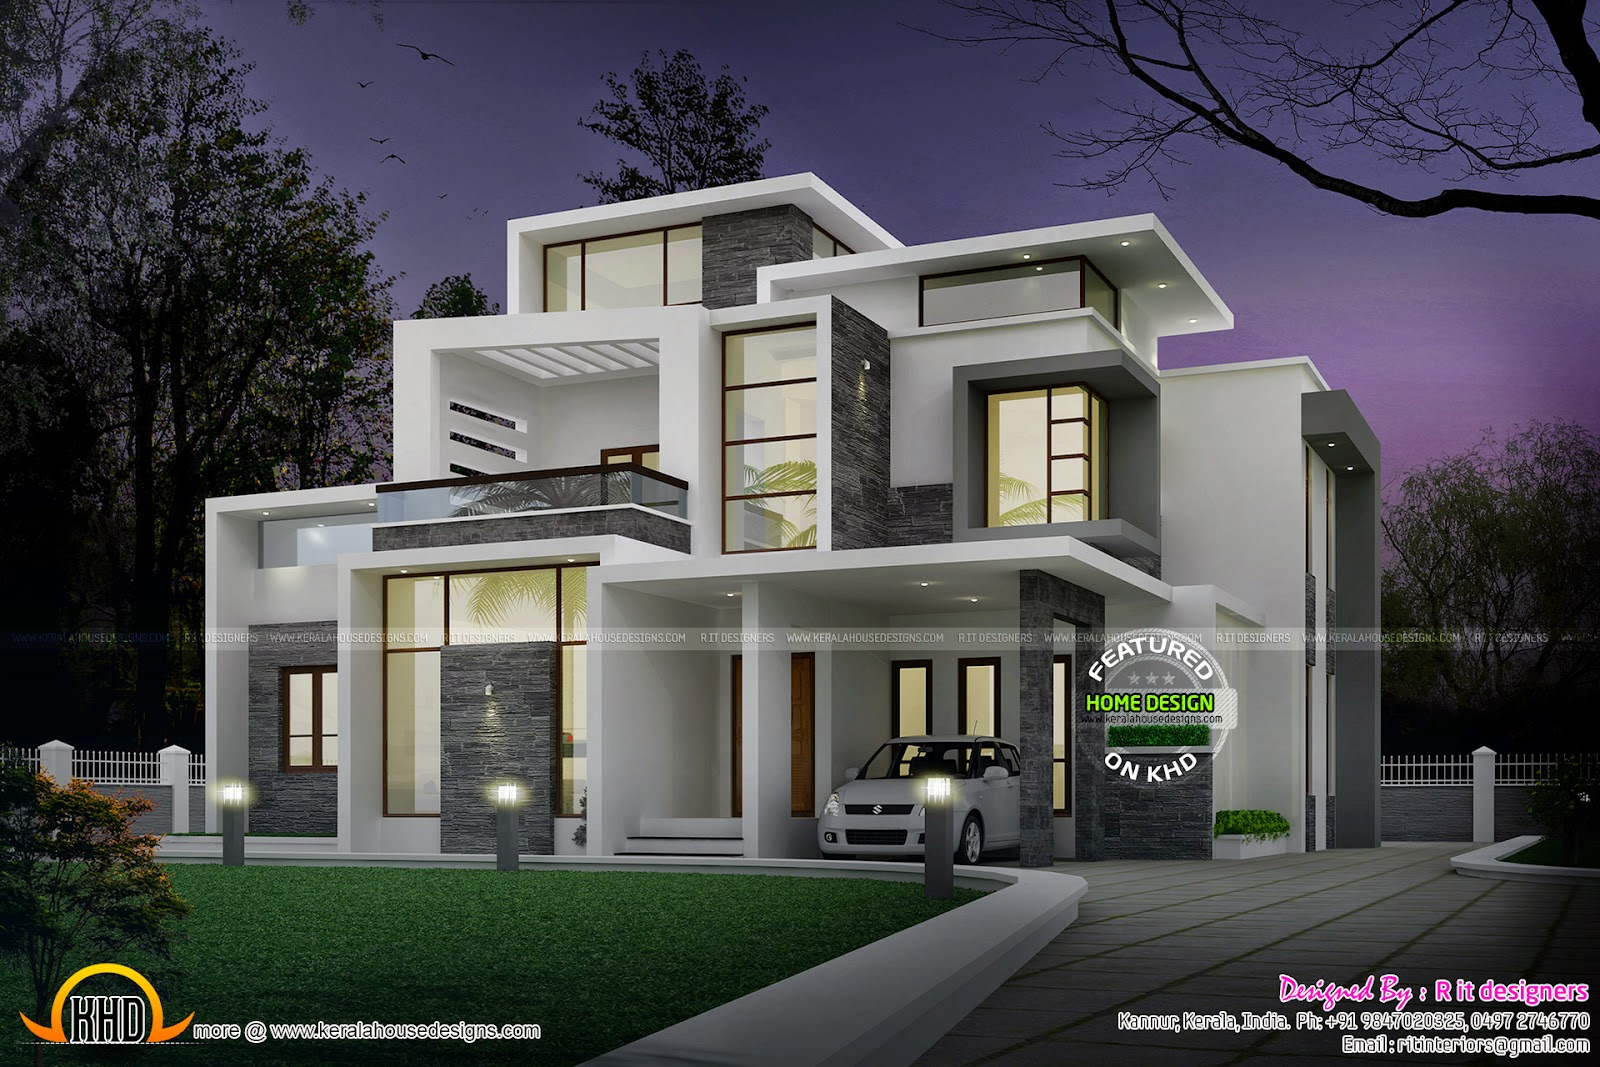 Modern Home Design: Grand Contemporary Home Design